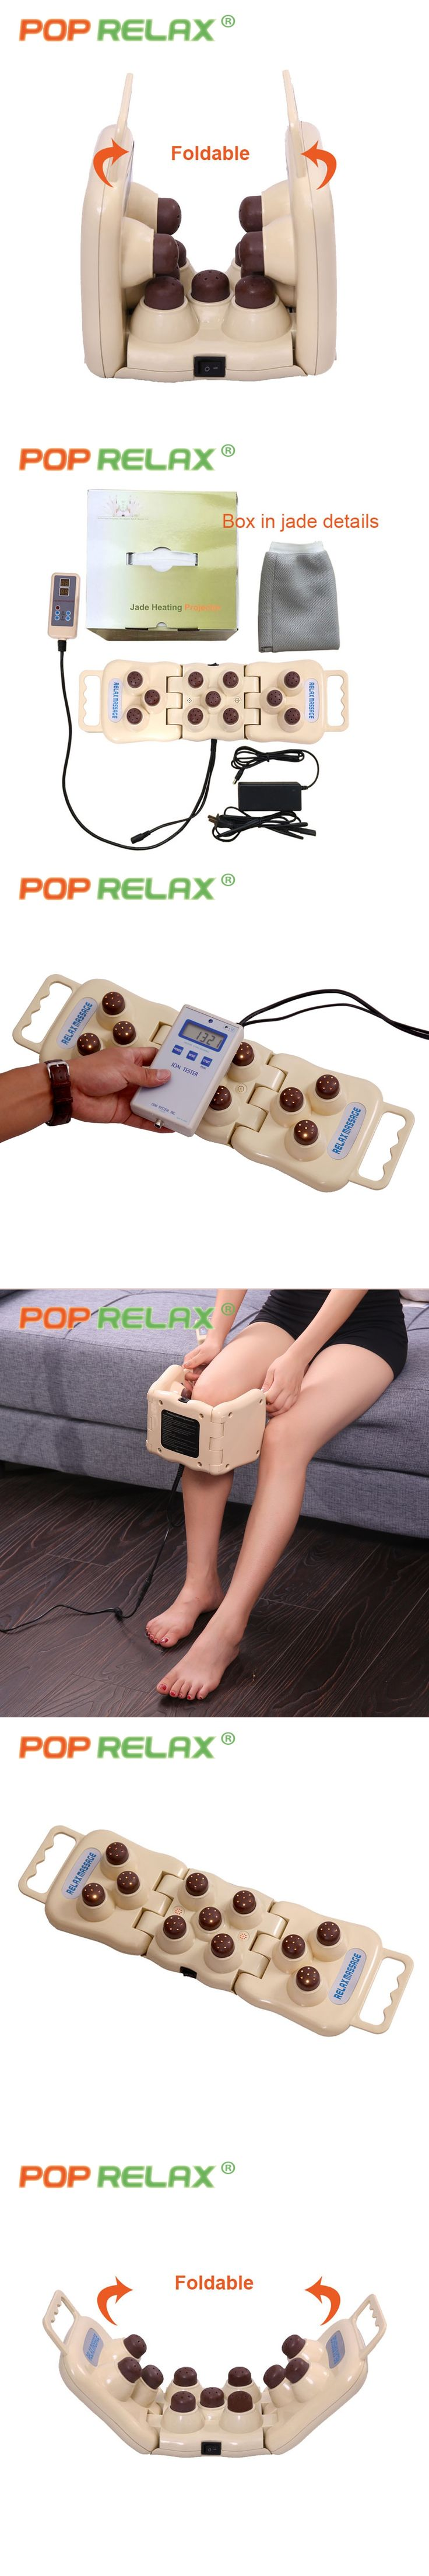 POP RELAX 11 balls tourmaline infrared heater massage roller LED photon light therapy knee device body pain relief ion projector